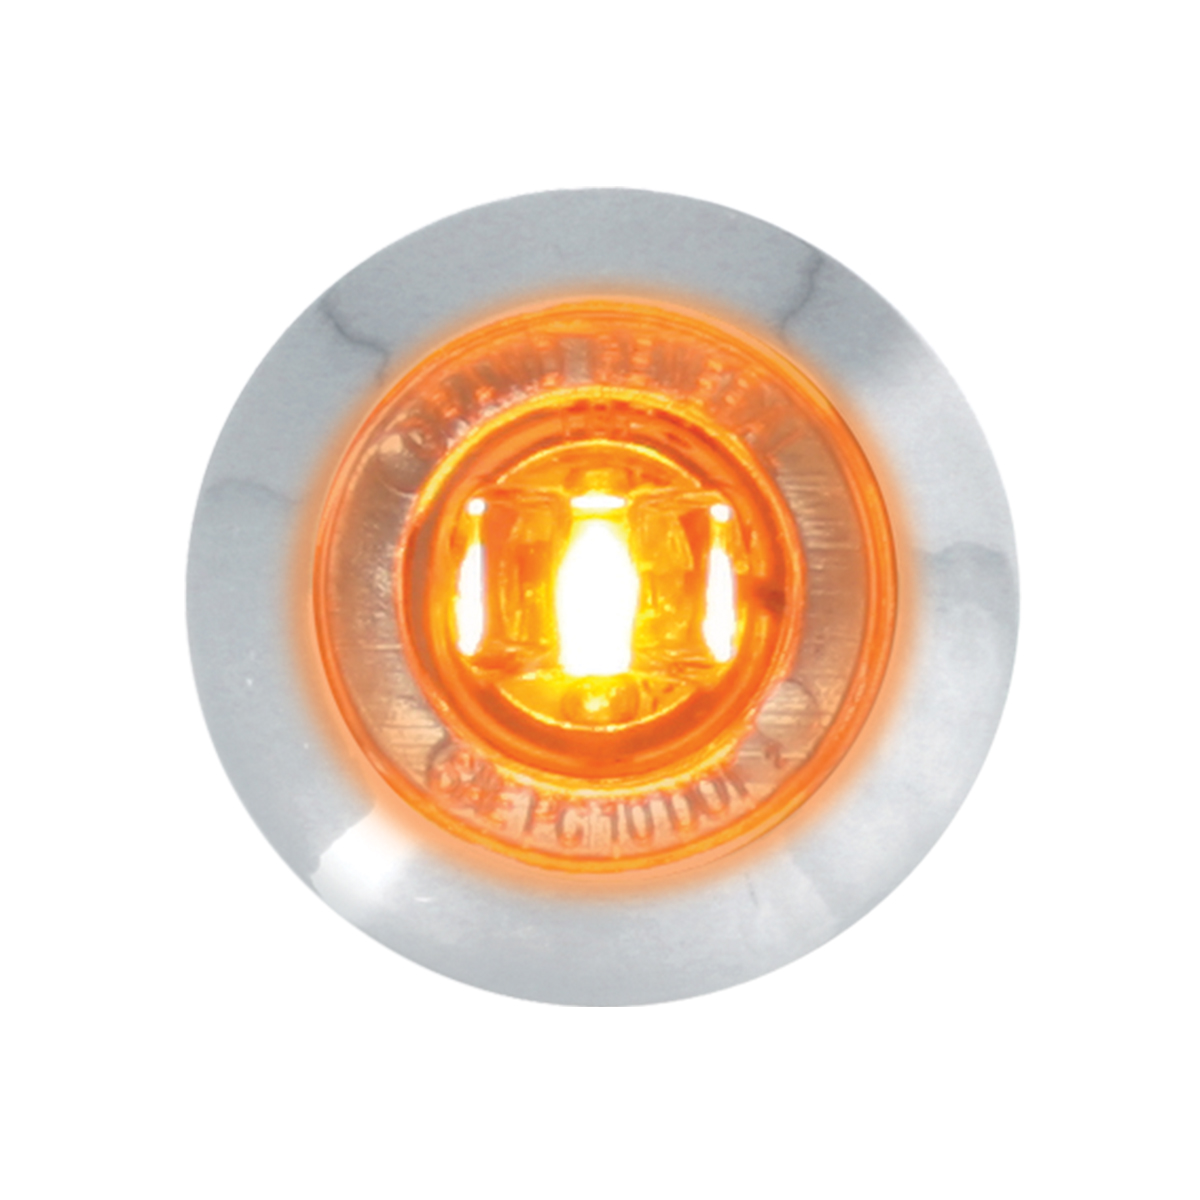 """75221 1-1/4"""" Dia. Dual Function LED Light with Chrome Plastic Bezel and Nut"""